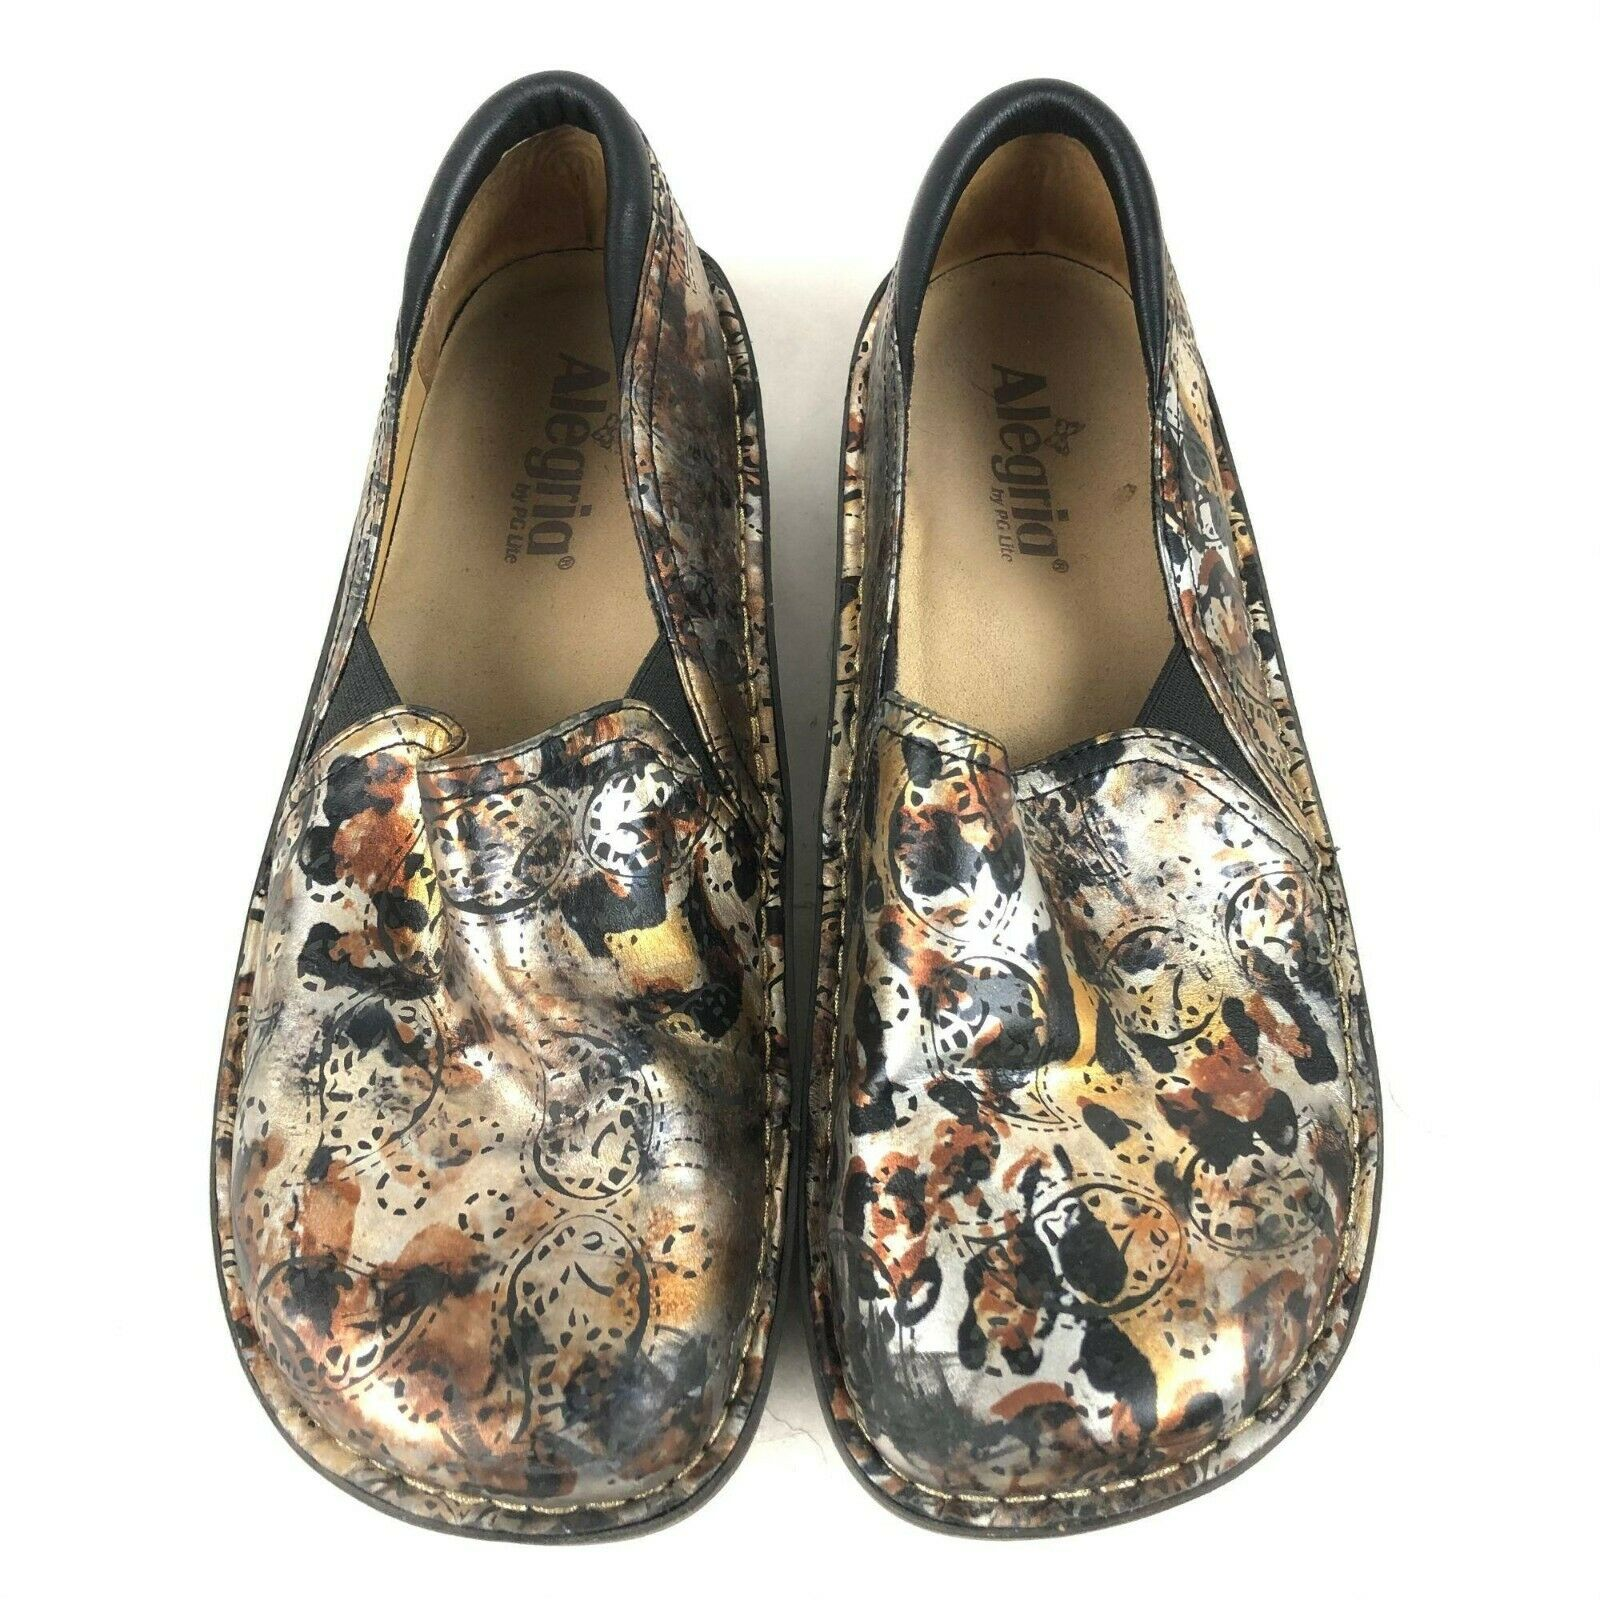 ALEGRIA by PG Lite DEB-386 Size 40 (9) Brown Floral Leather Mary Jane Flats